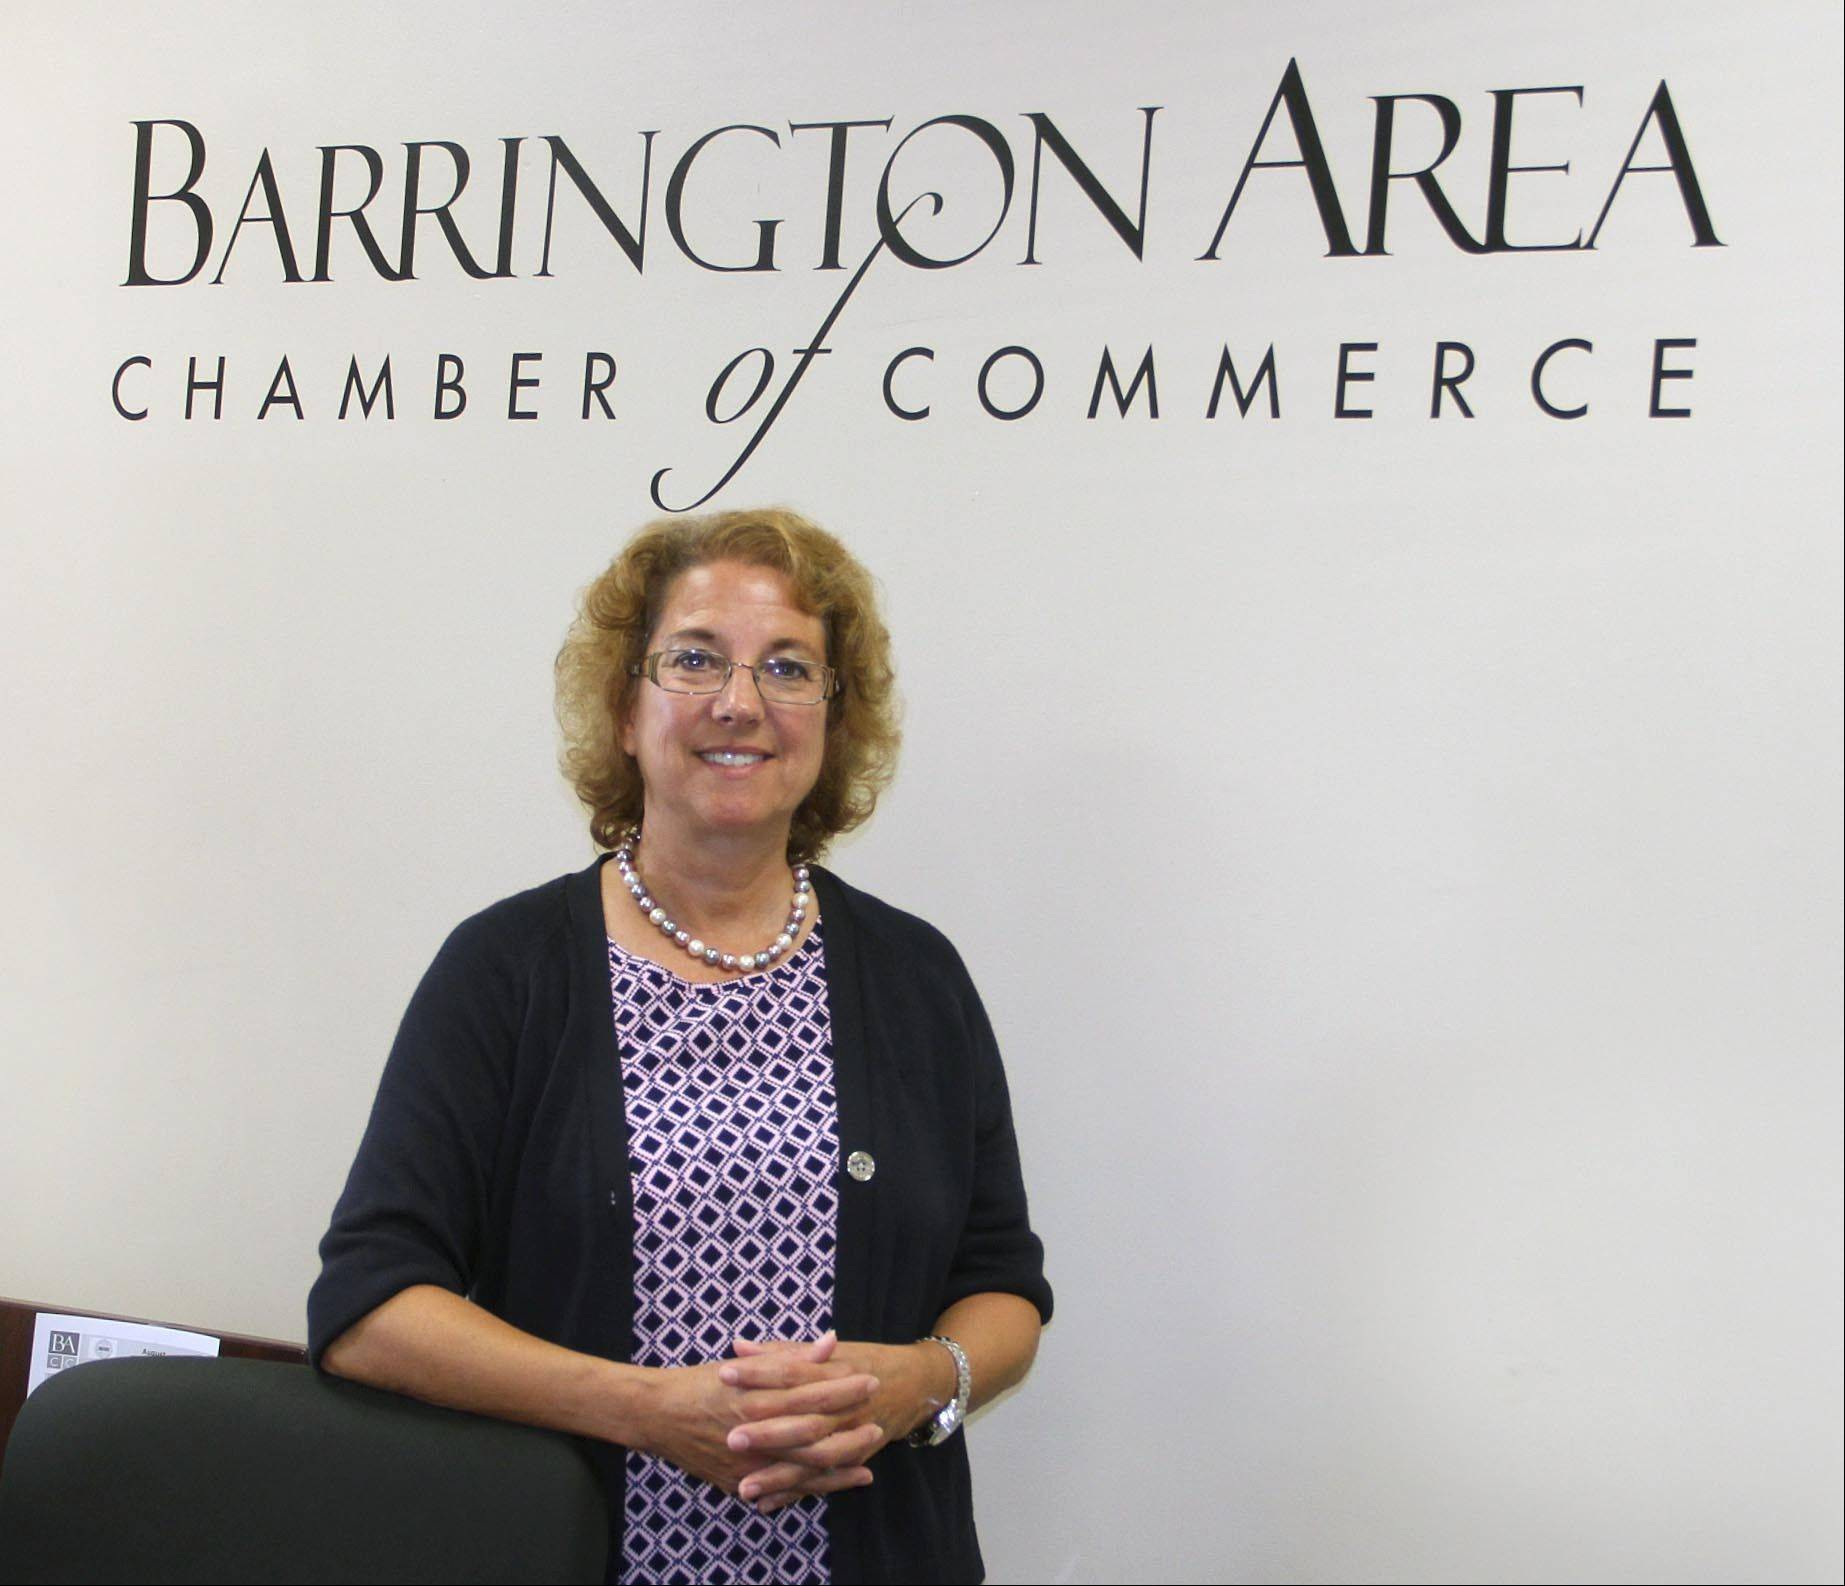 Suzanne Corr, executive director for the Cary Grove Area Chamber of Commerce, has been hired as president of the Barrington Area Chamber of Commerce.